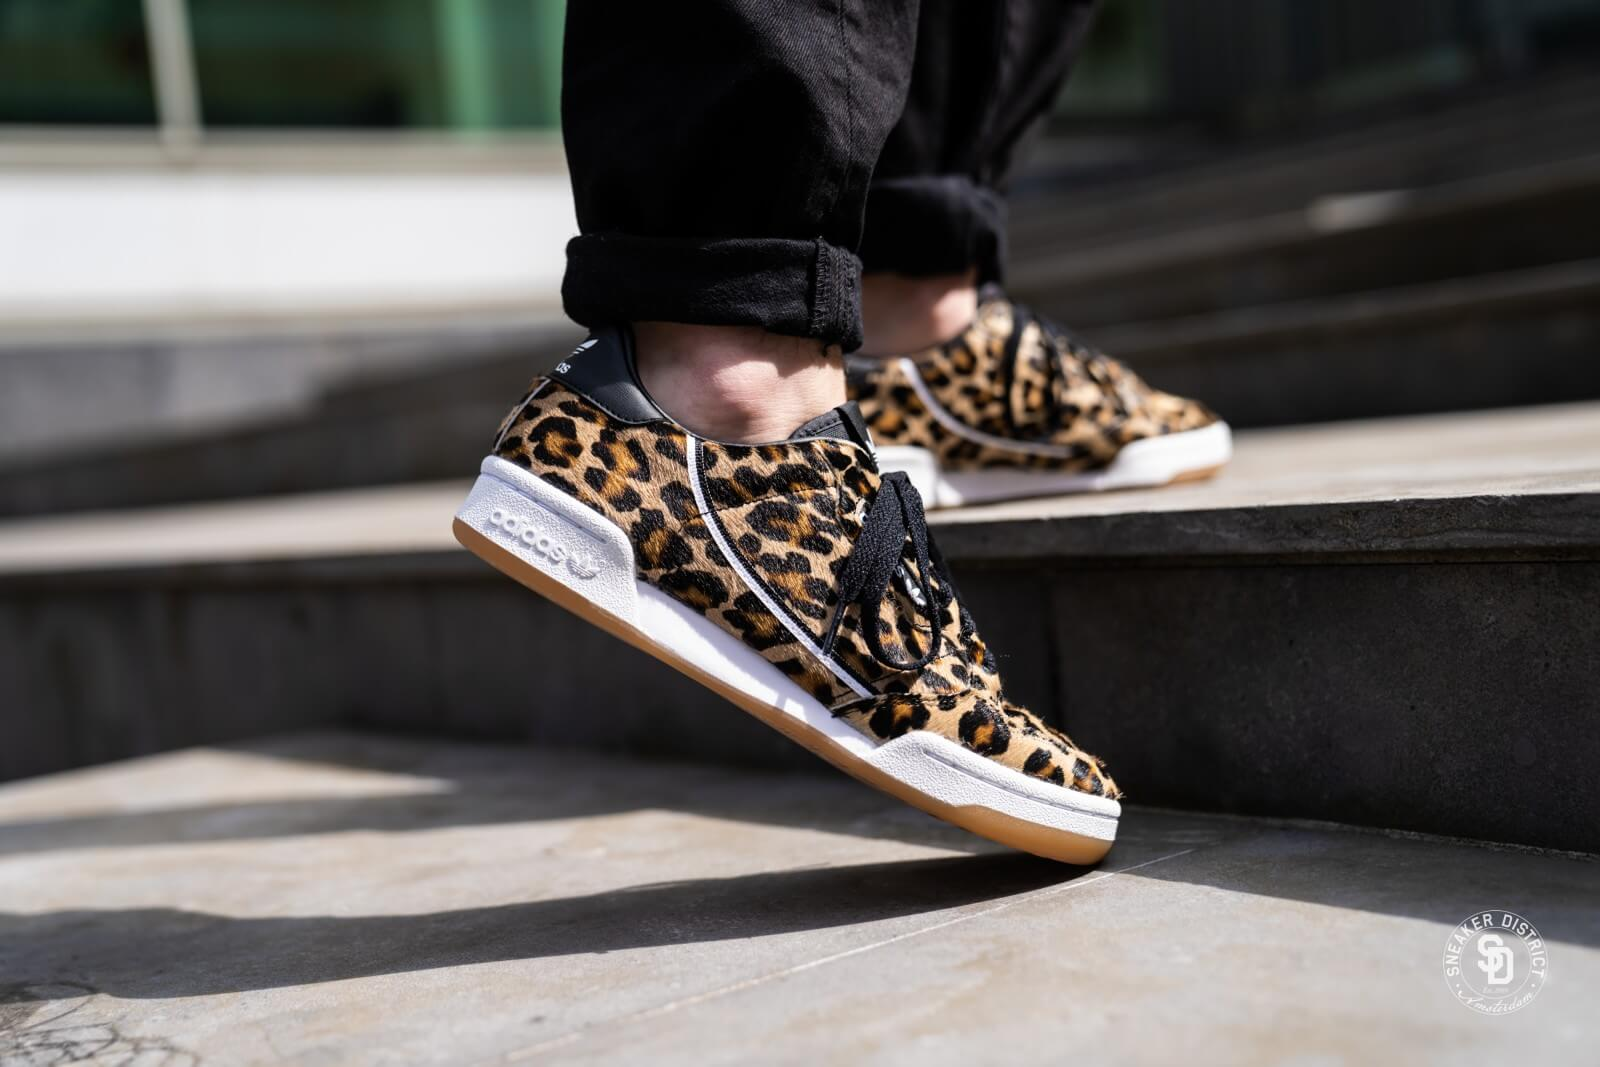 Adidas Continental 80 Leopard Core BlackFootwear White F33994